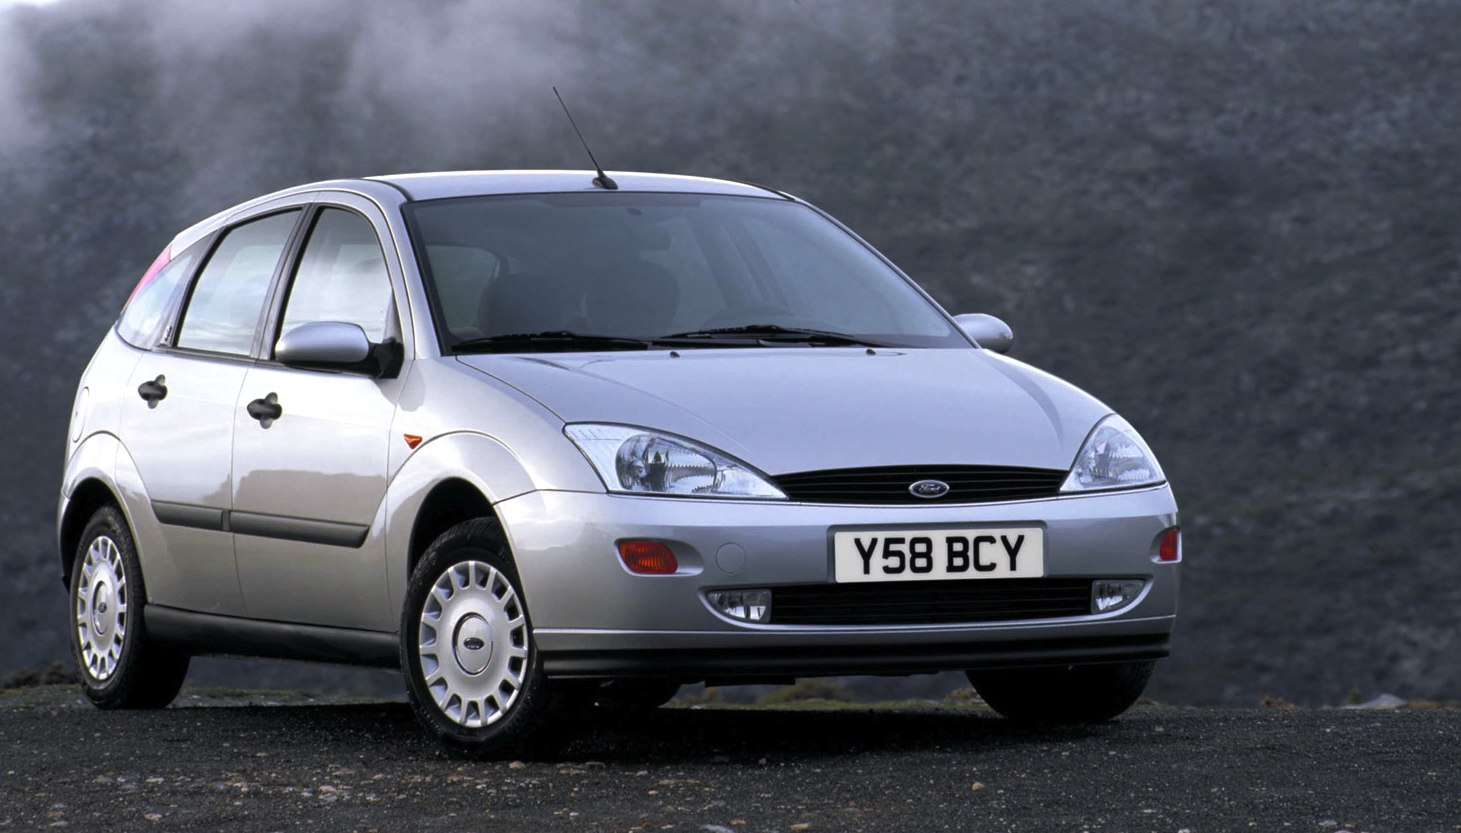 uk 1998 ford fiesta leads escort leaves focus arrives. Black Bedroom Furniture Sets. Home Design Ideas